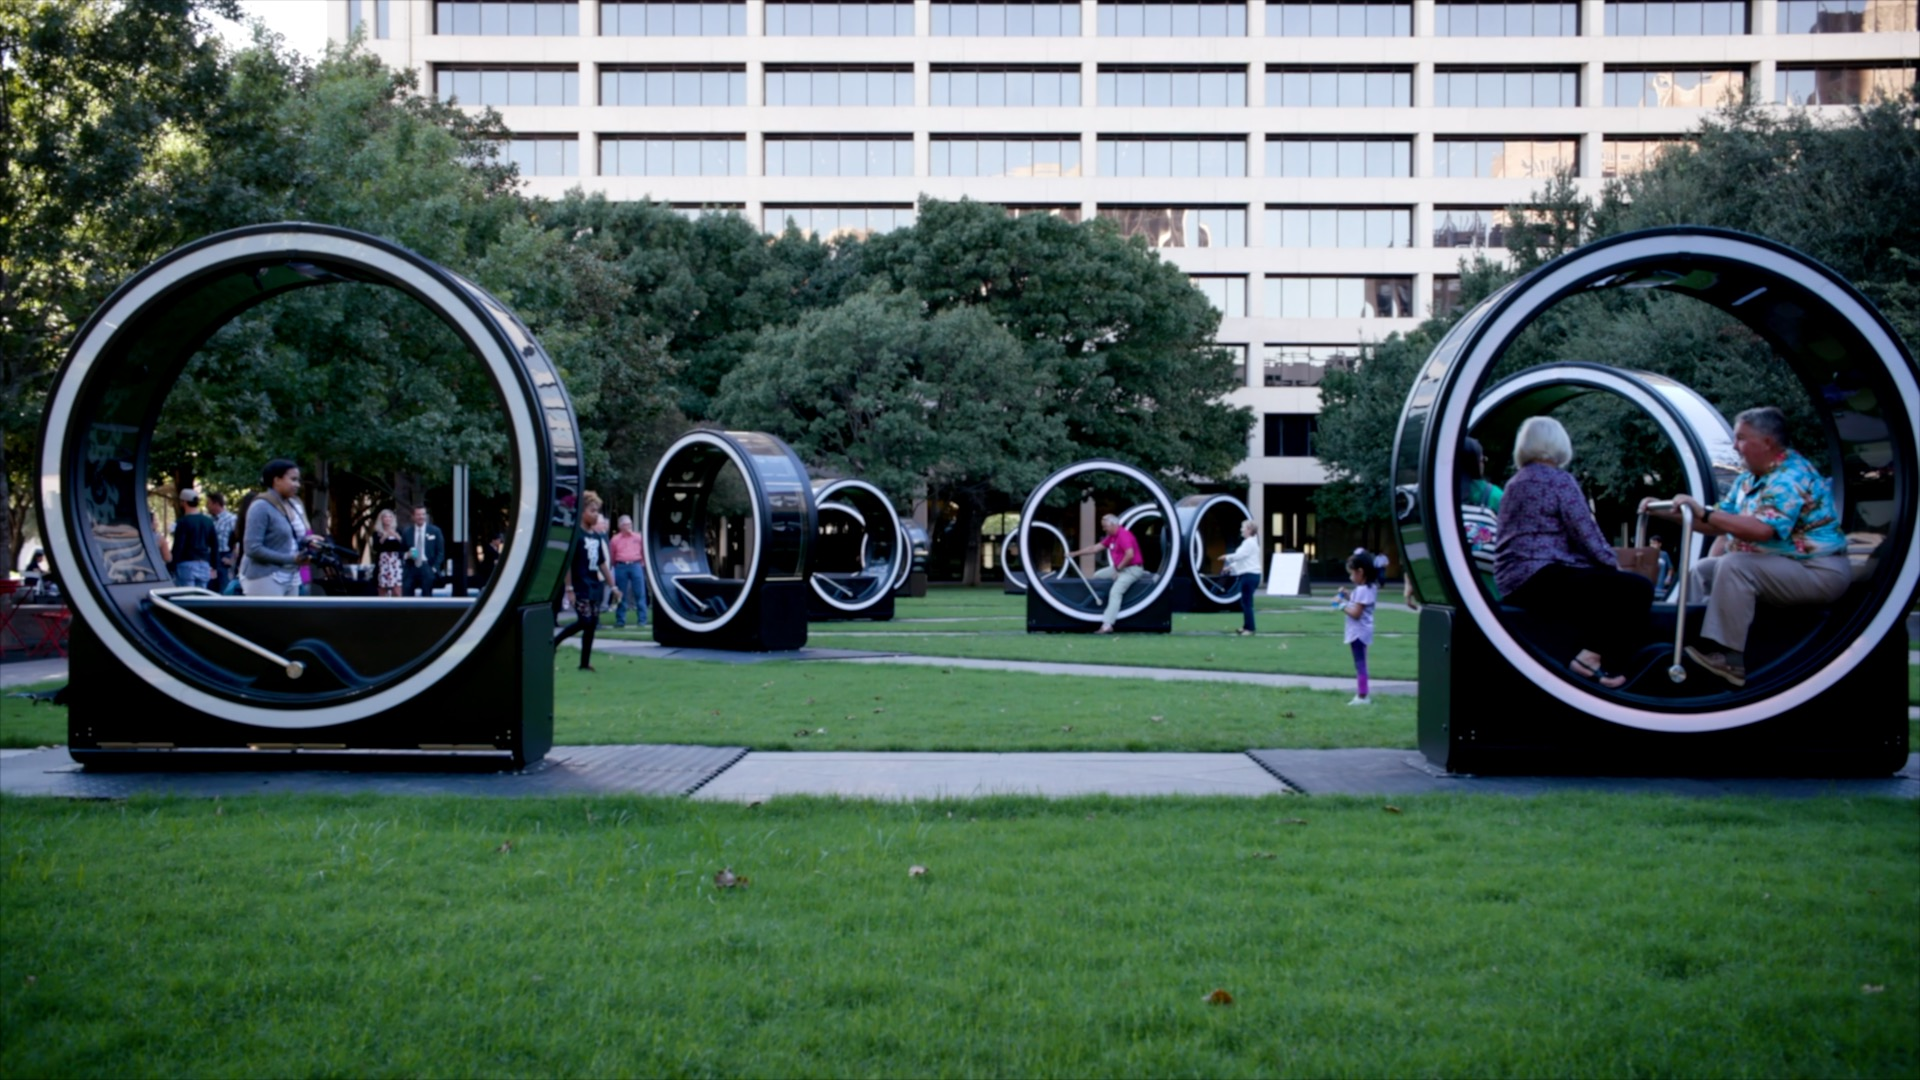 'Loop' at Burnett Park in Downtown Fort Worth, Photo: Downtown Fort Worth, Inc.